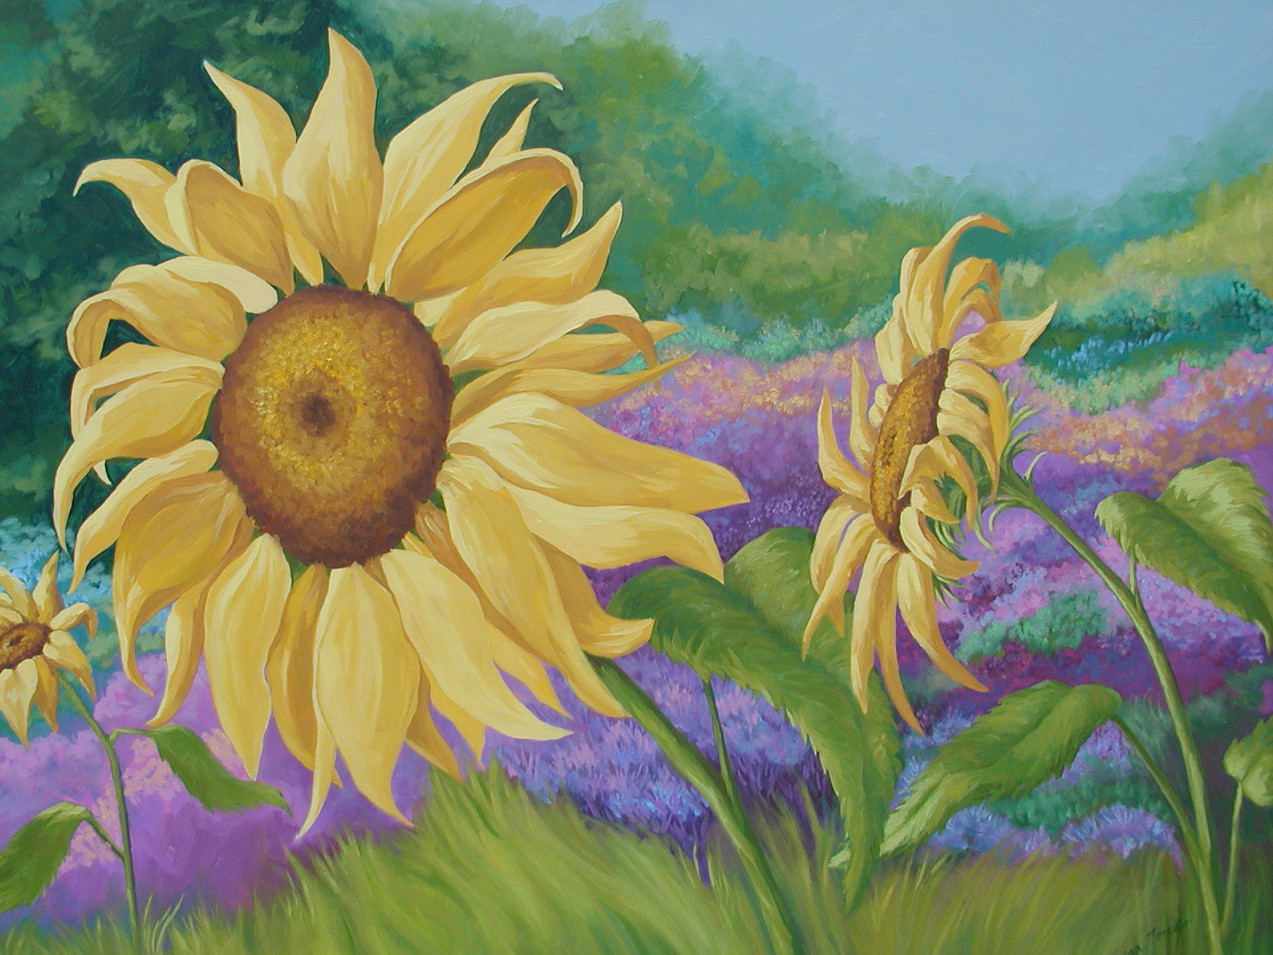 SUNFLOWERS-OILS copy.JPG